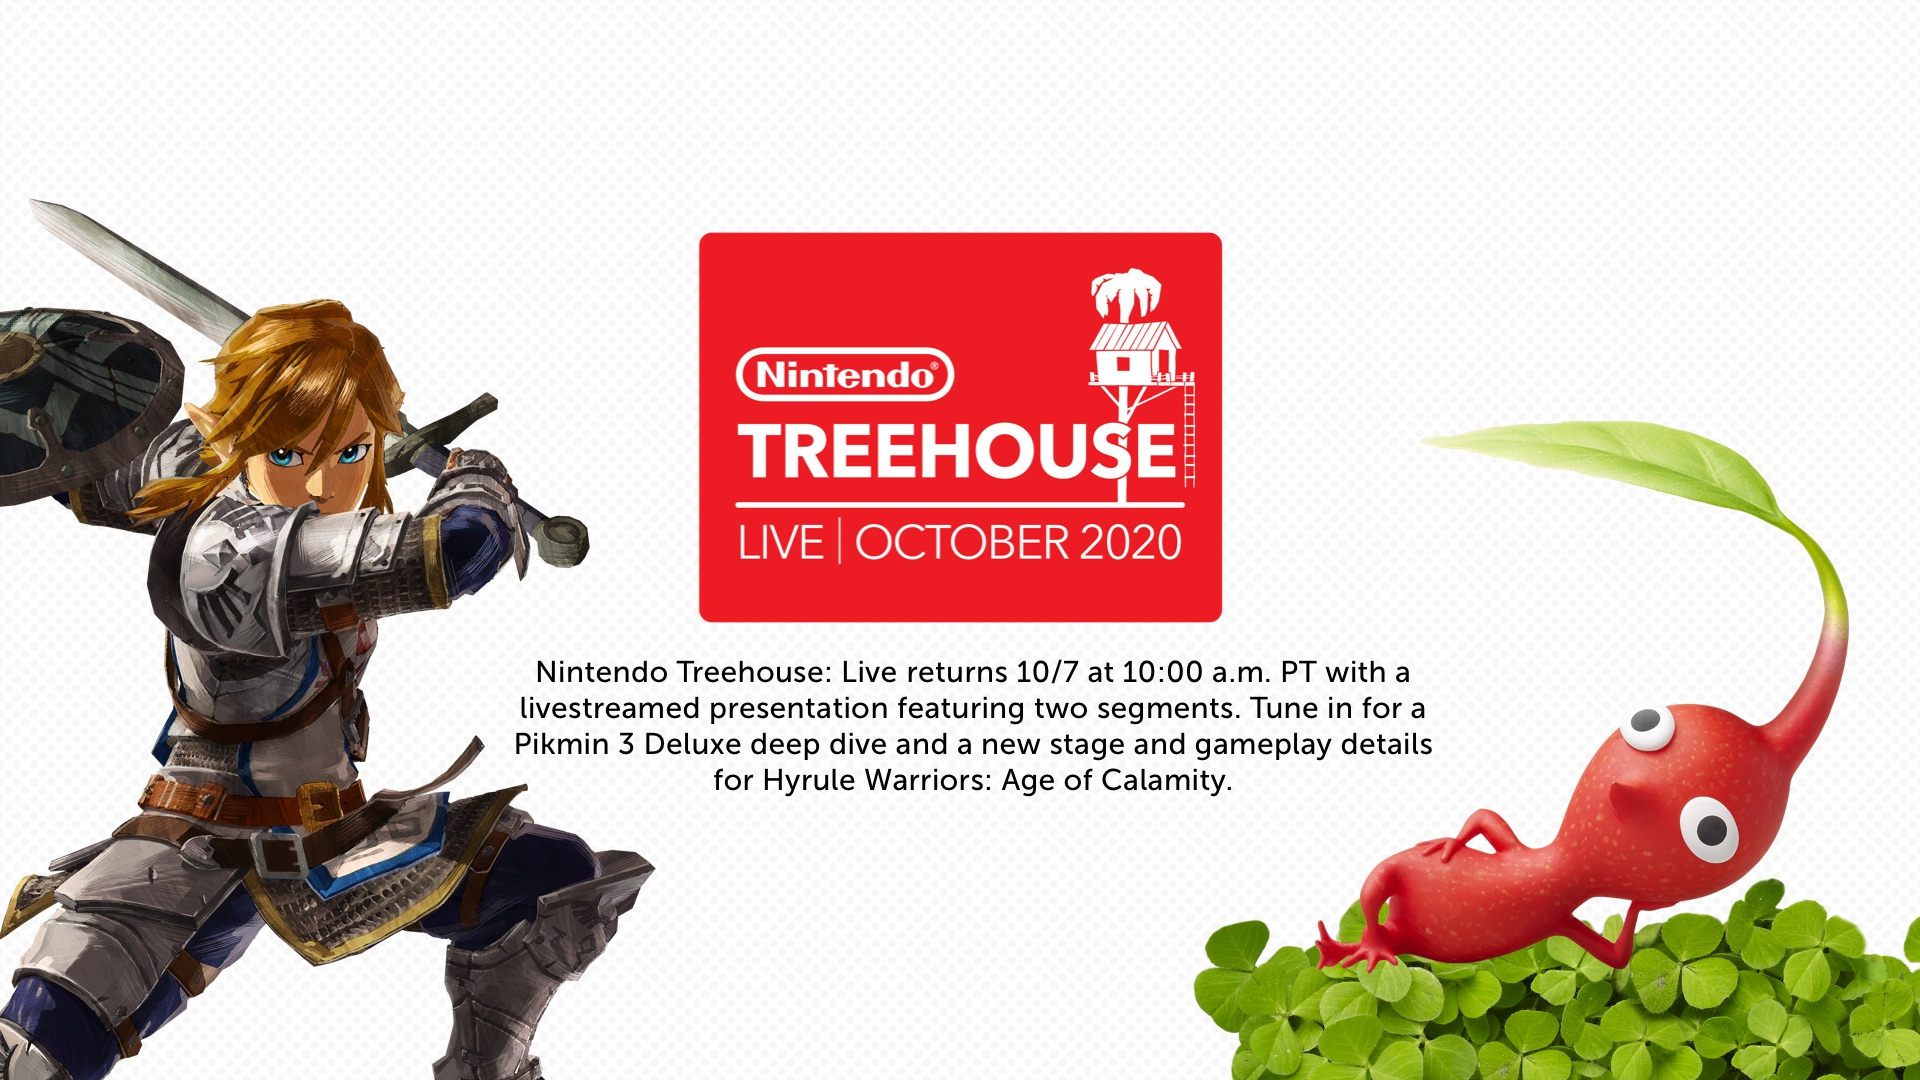 Nintendo Treehouse Live Shows Off New Gameplay For Pikmin 3 Deluxe Hyrule Warriors Age Of Calamity Miketendo64 Miketendo64